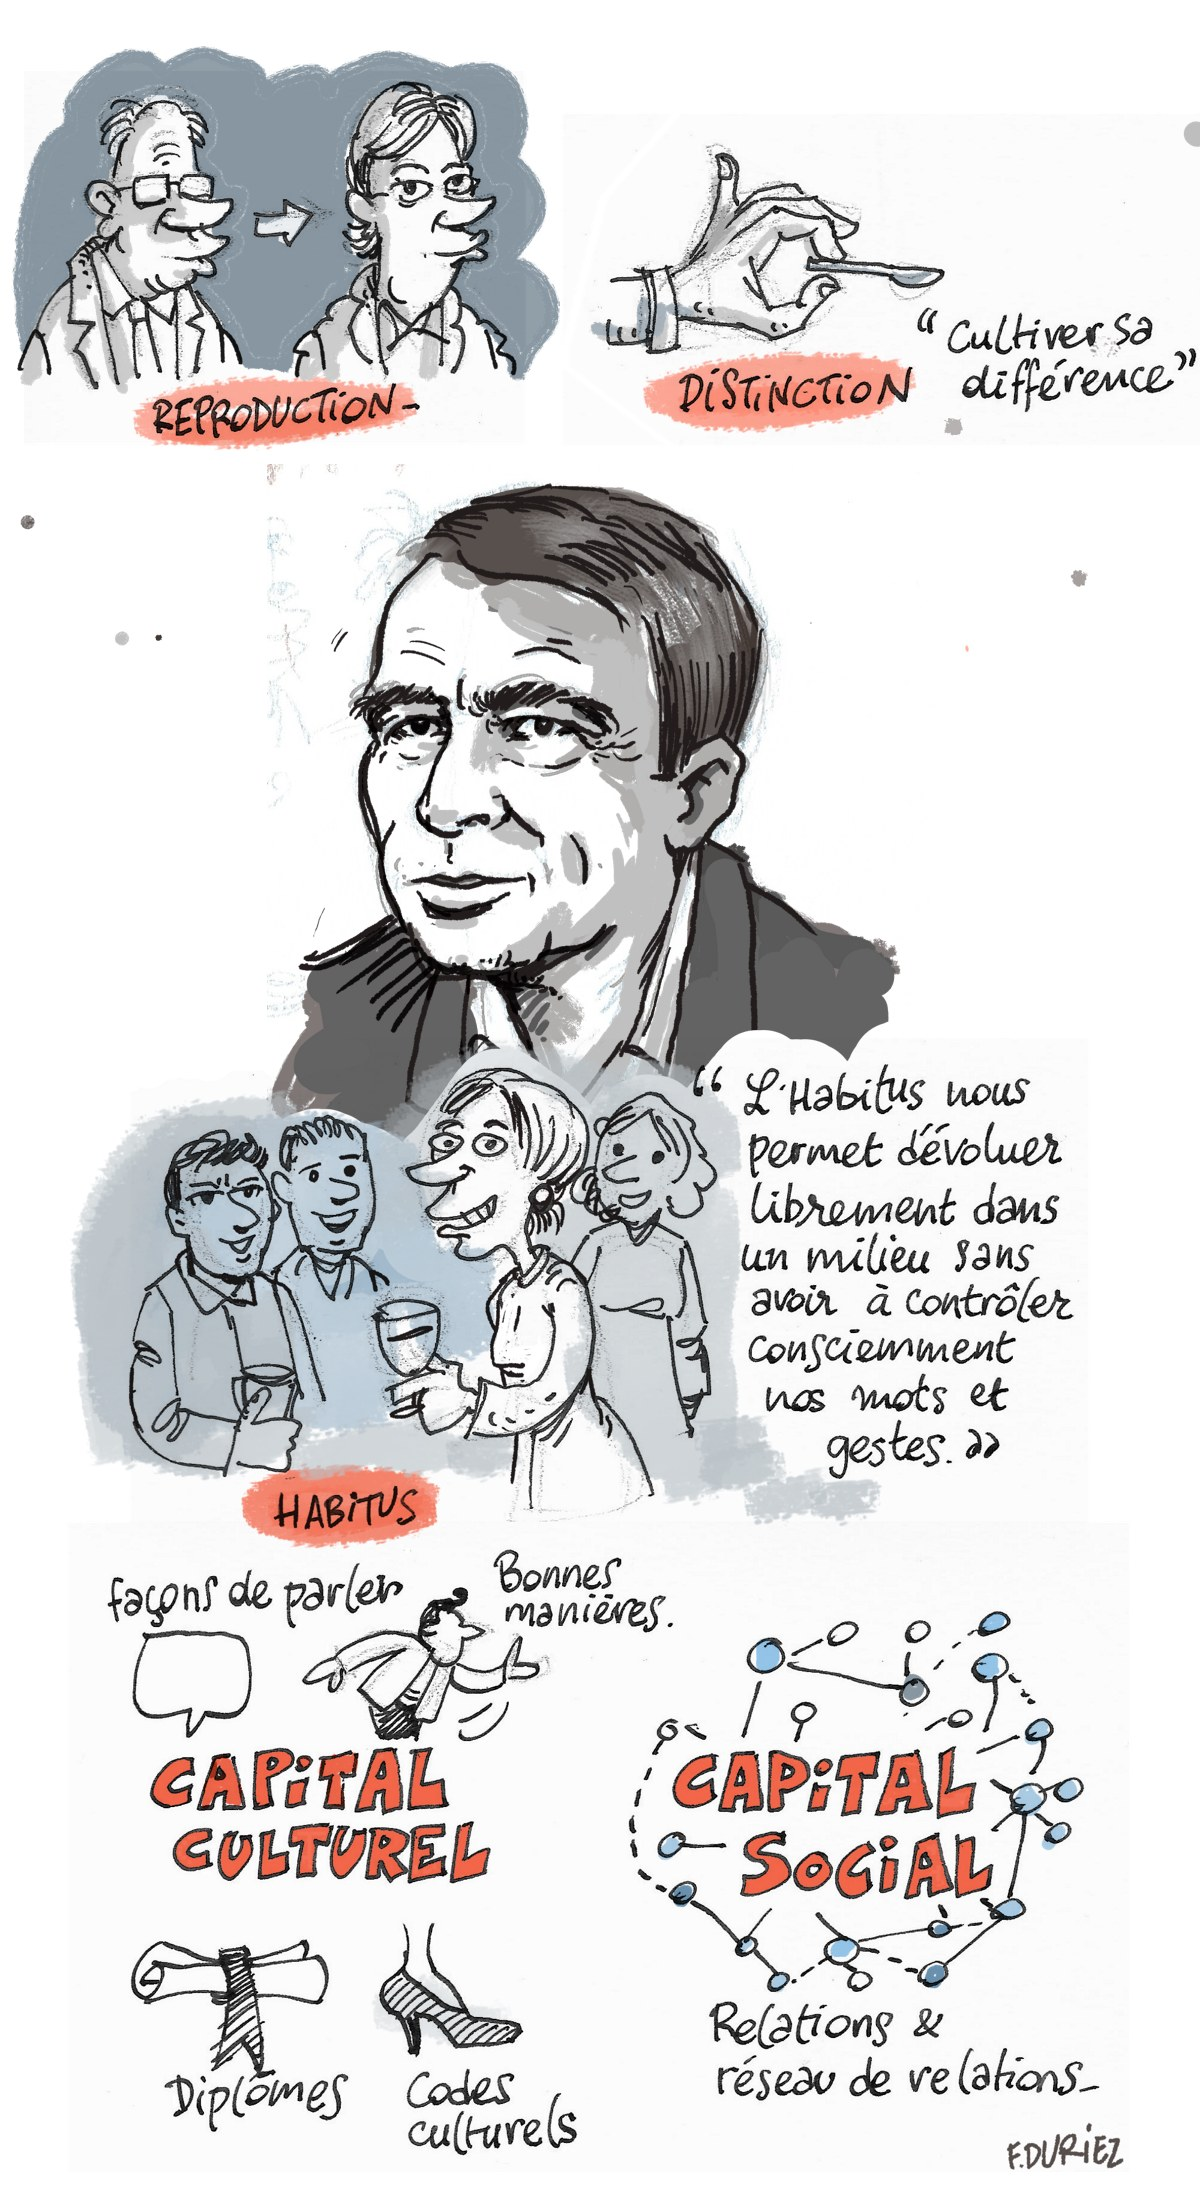 quelques concepts de Bourdieu